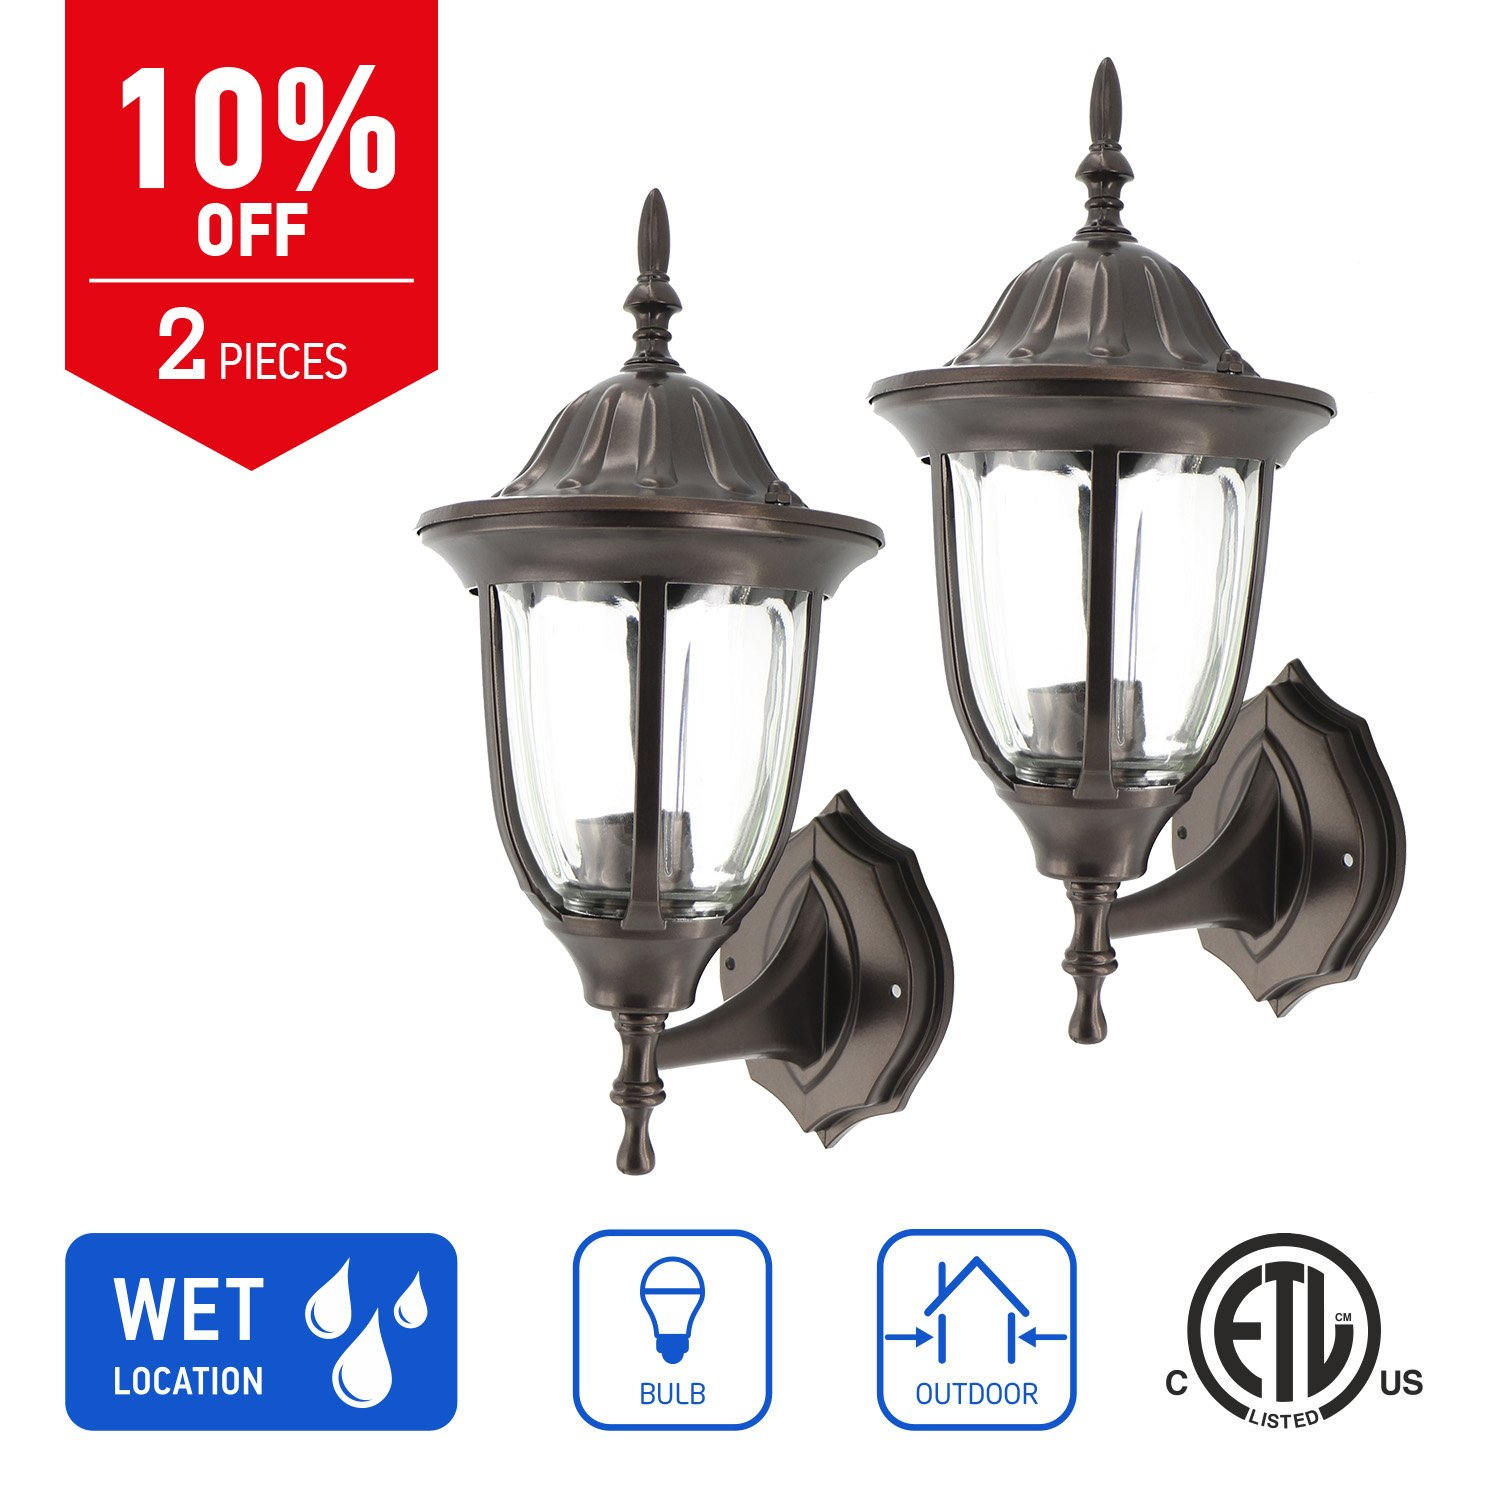 in Home 1-Light Outdoor Wall Mount Lantern Upward Fixture L03 Series Traditional Design Bronze Finish, Clear Glass Shade (2 Pack), ETL Listed